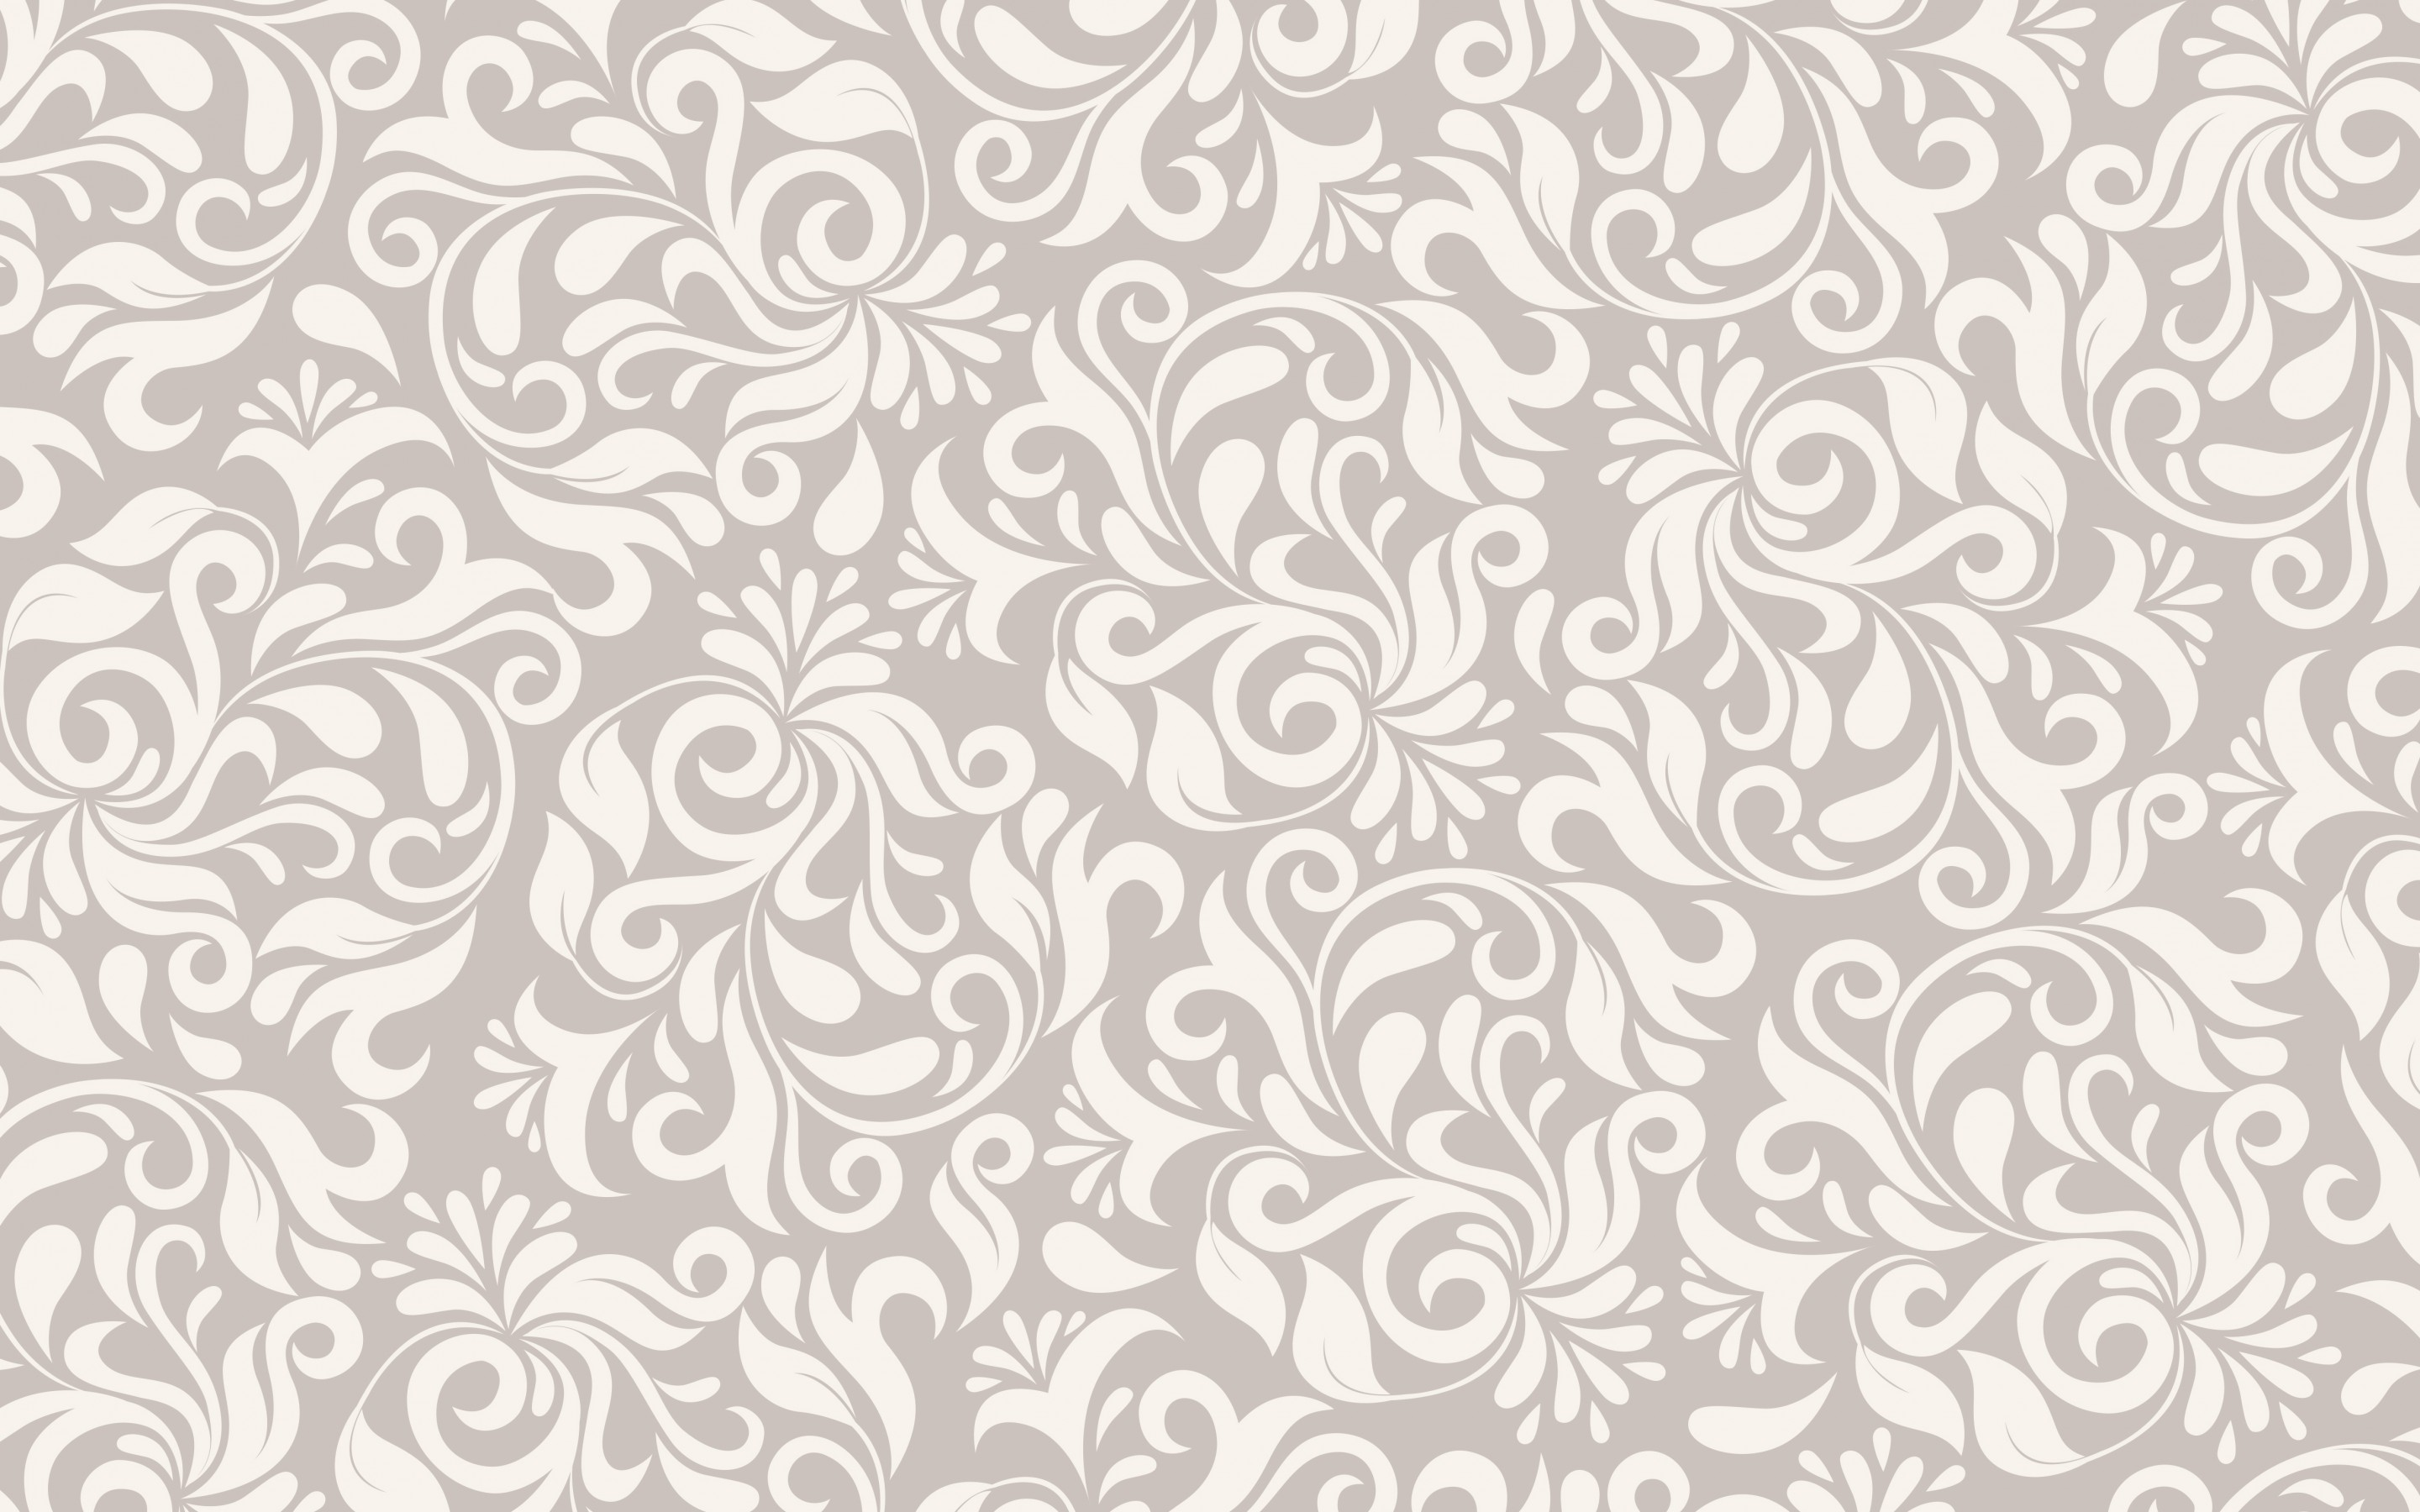 Flower Pattern Background Png (#141434).